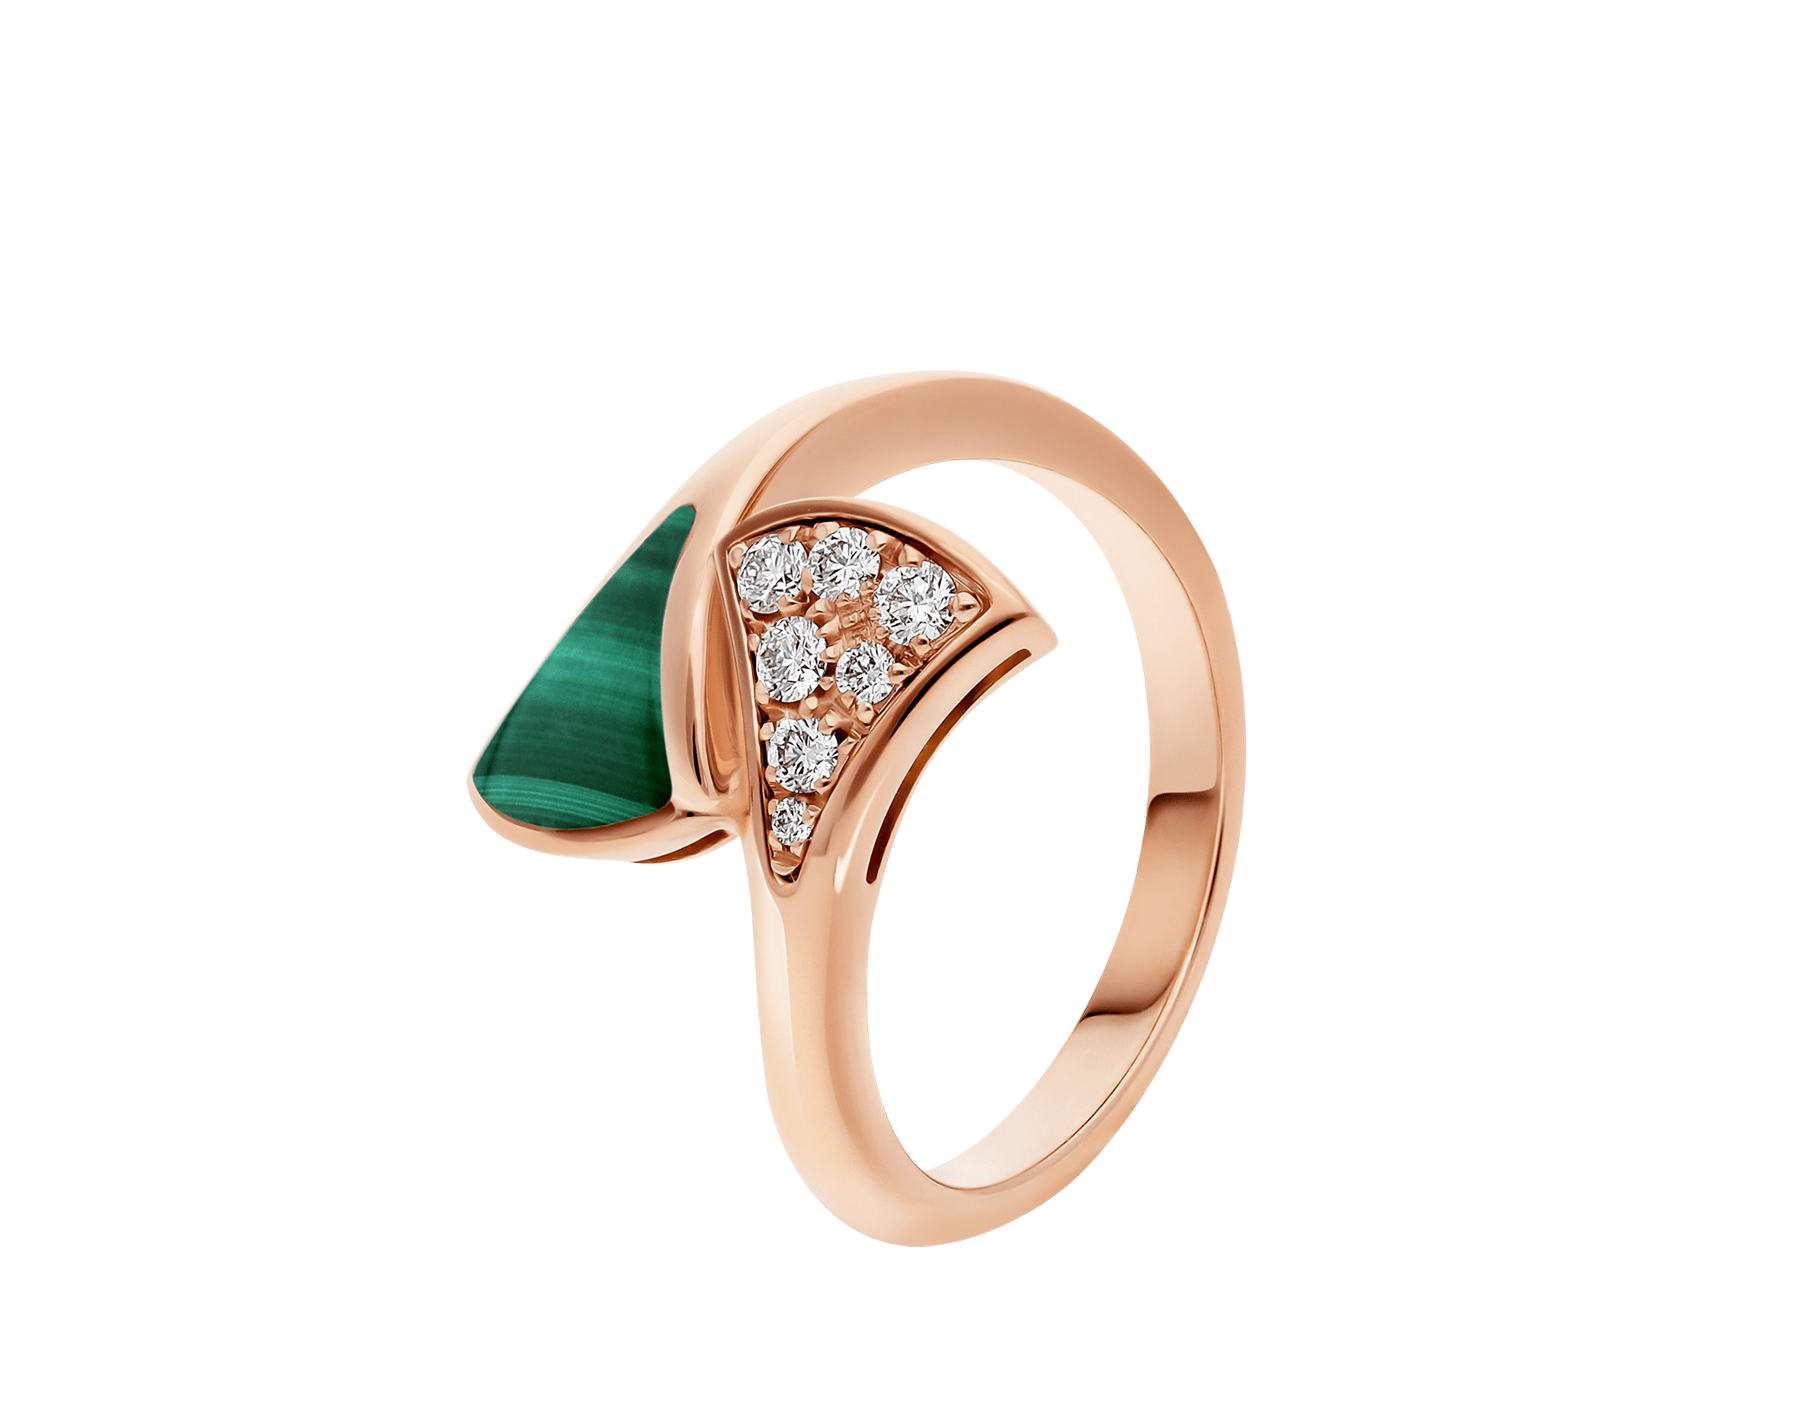 DIVAS' DREAM 18 kt rose gold ring set with malachite element and pavé diamonds (0.10 ct) AN858646 image 1